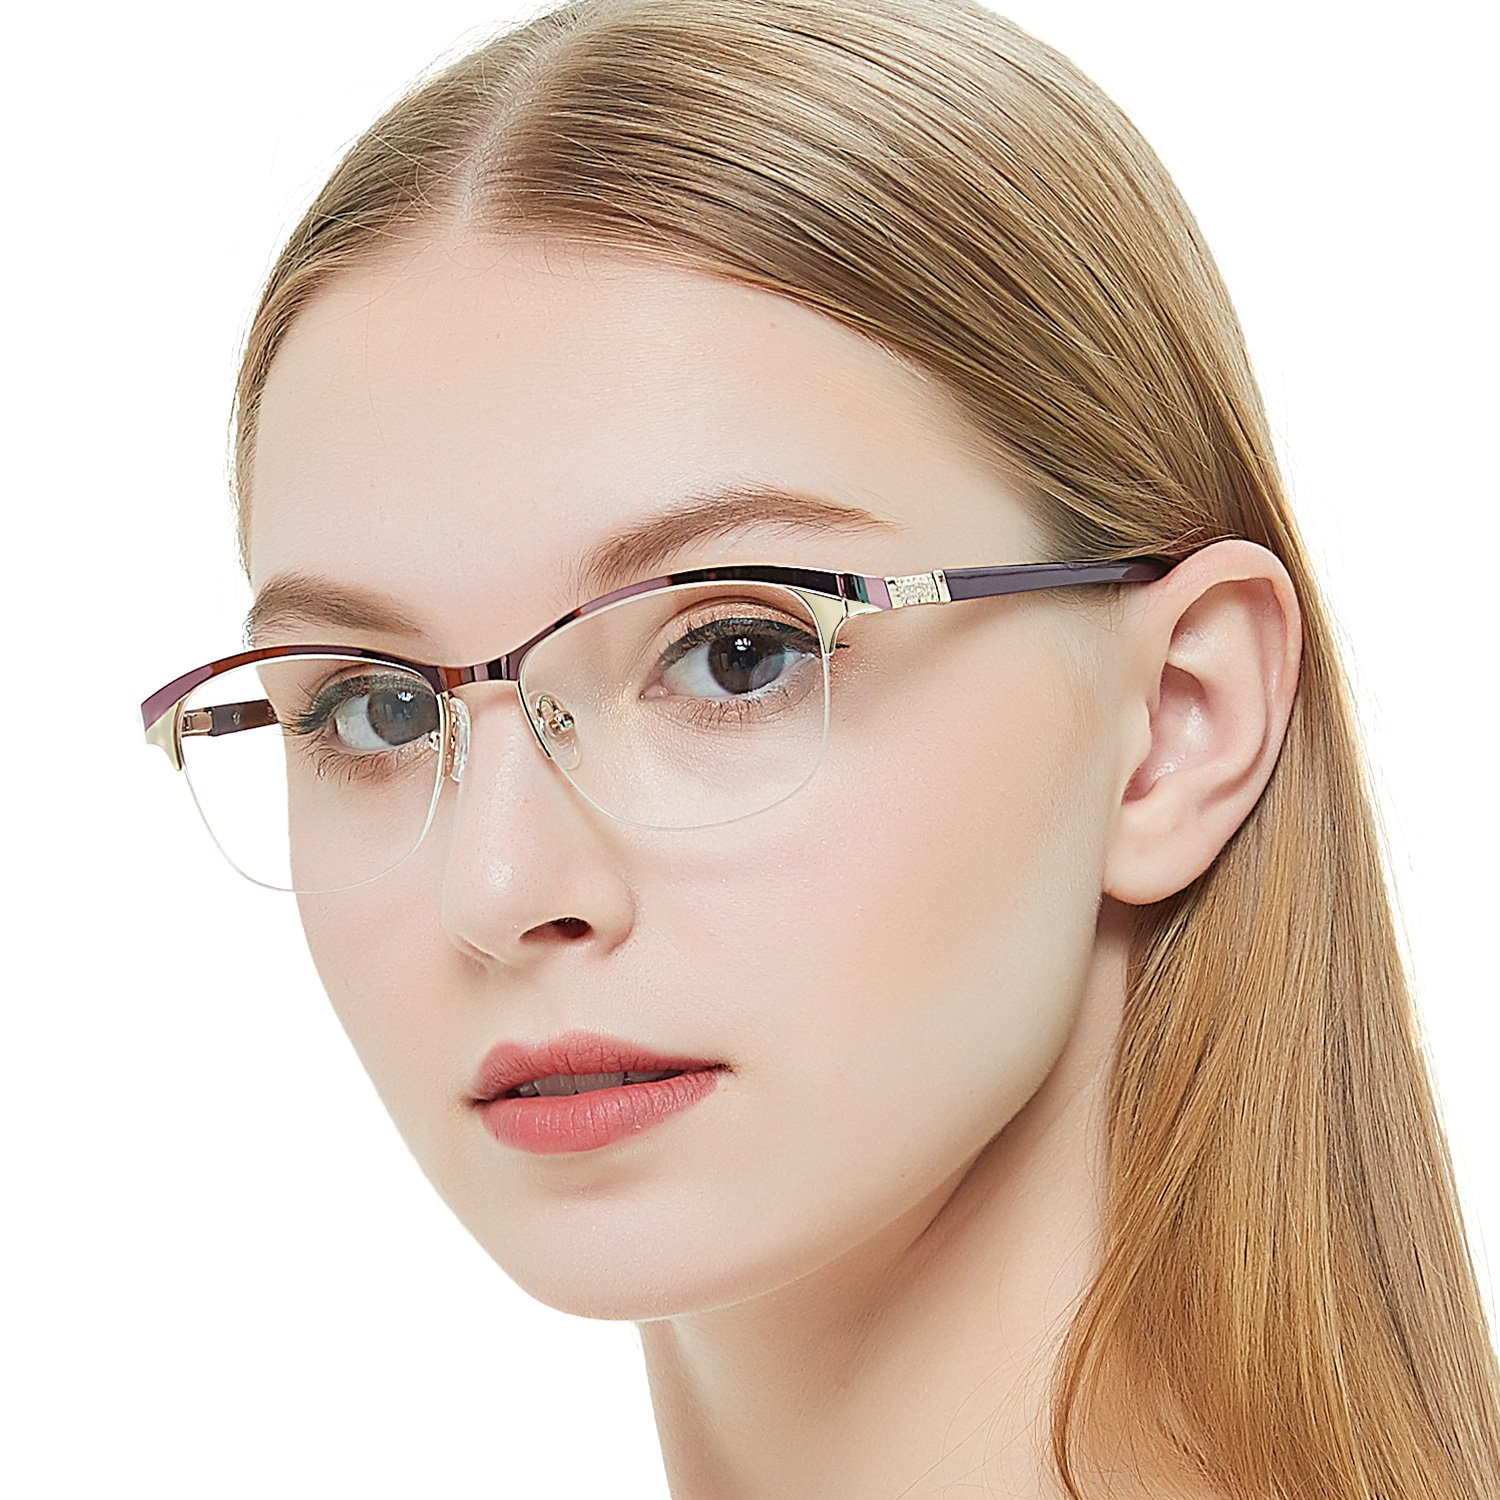 OCCI CHIARI Fashion Women Thin TR90 Rectangular Eyewear Frames with Clear Lenses spring hinge